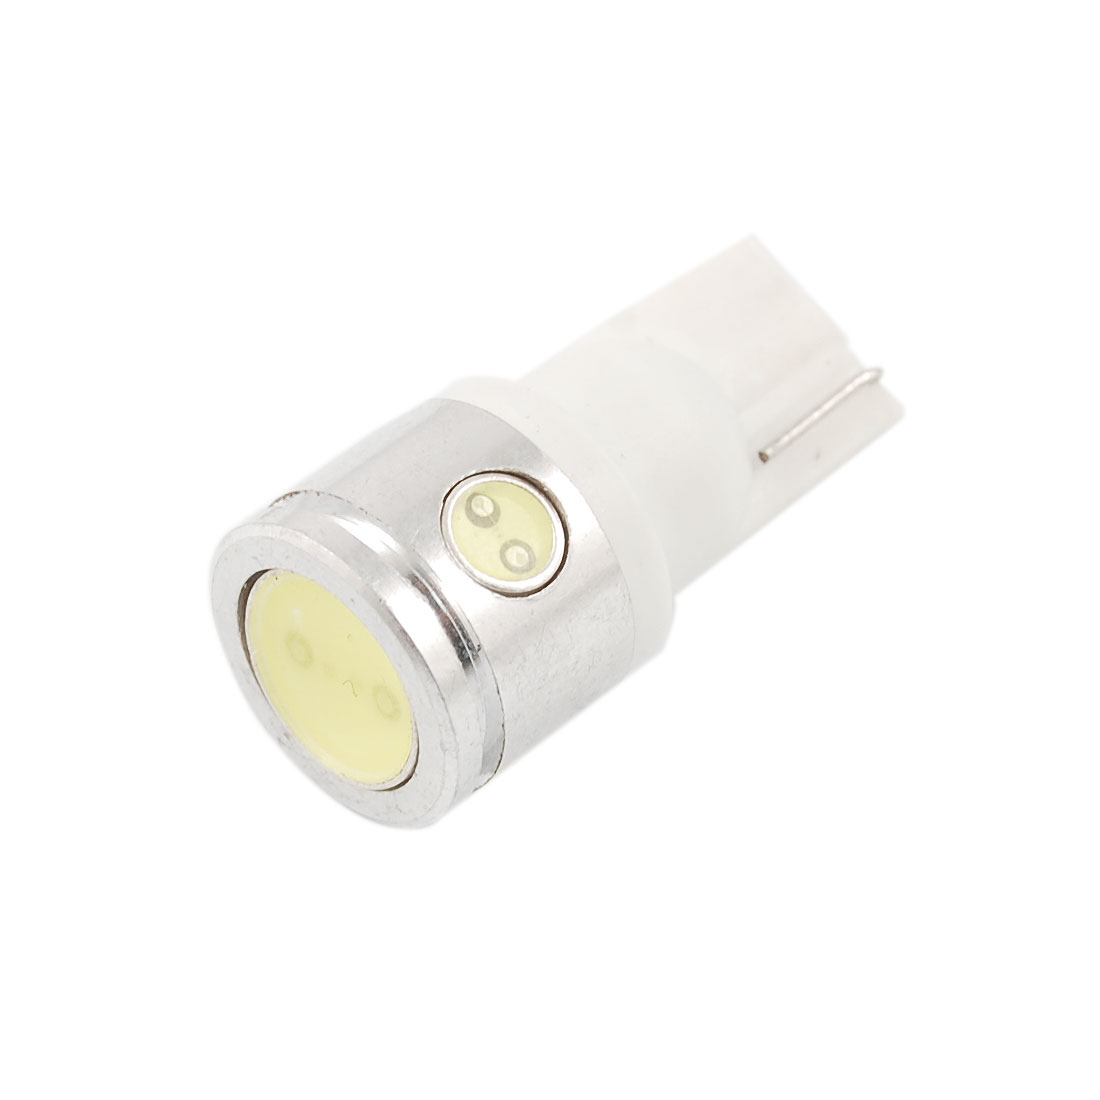 T10 W5W White 3+1 SMD LED 2.5W High Power Side Light Bulb Replacement for Car